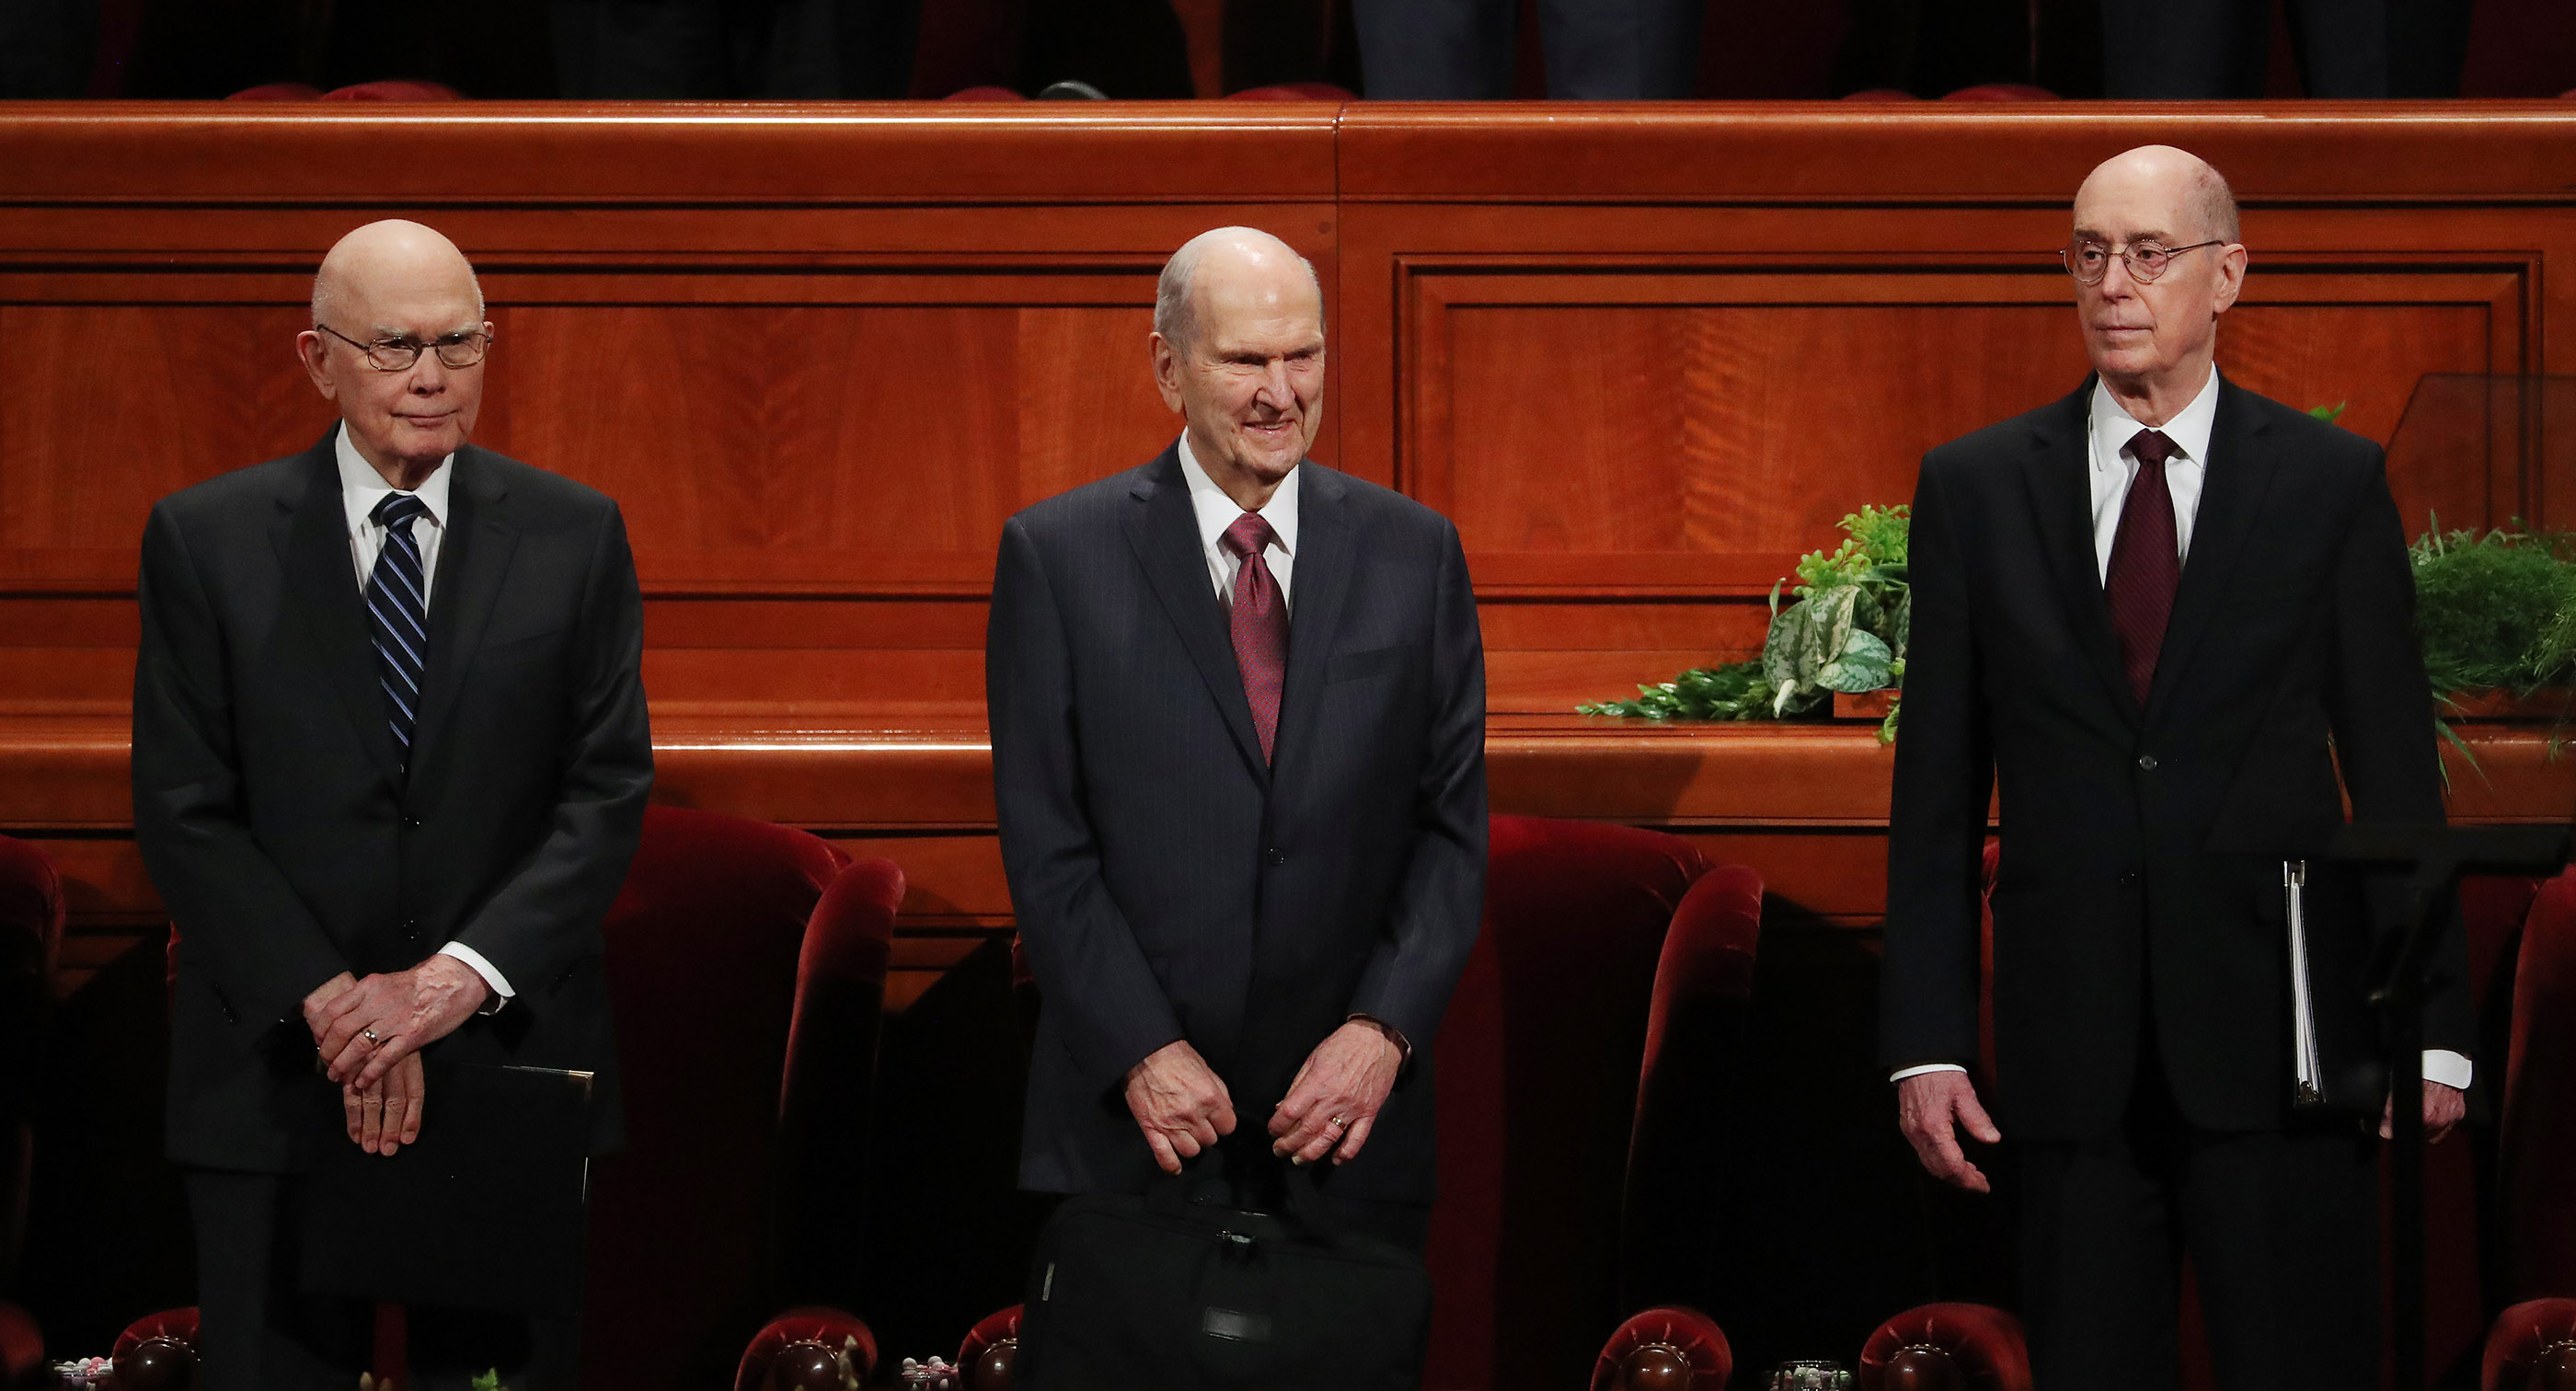 President Russell M. Nelson of The Church of Jesus Christ of Latter-day Saints, center, and his counselors, President Dallin H. Oaks, first counselor in the First Presidency, left, and President Henry B. Eyring, second counselor in the First Presidency, right, enter the Conference Center prior to the 189th Annual General Conference of The Church of Jesus Christ of Latter-day Saints in Salt Lake City on Saturday, April 6, 2019.